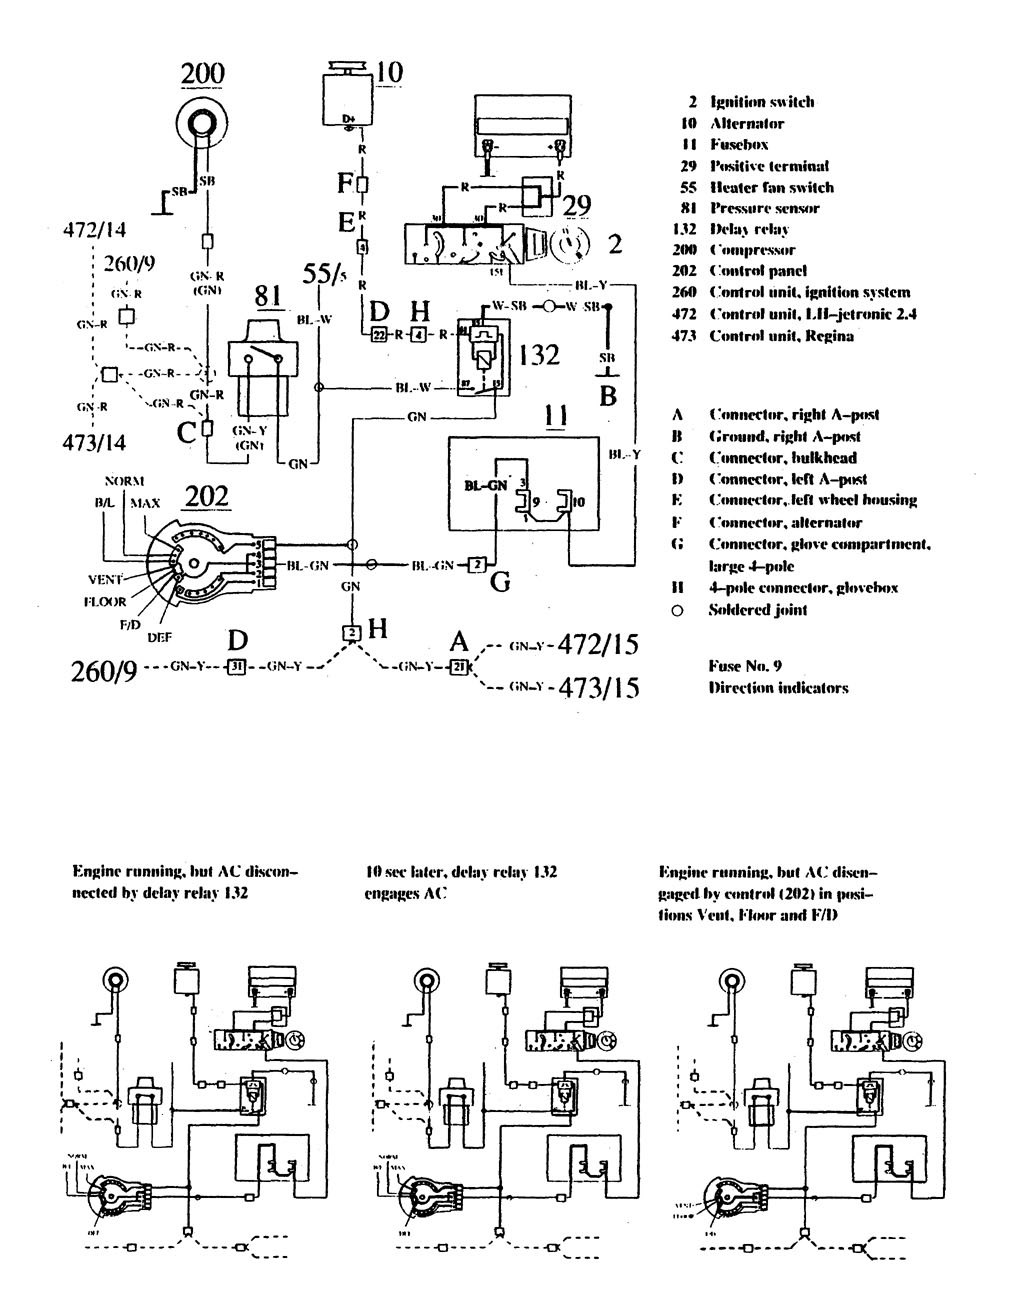 Volvo 760 Ac Wiring Diagram | Wiring Diagram on volvo snowmobile, volvo xc90 fuse diagram, volvo type r, international truck electrical diagrams, volvo sport, volvo fuse box location, volvo recall information, volvo s60 fuse diagram, volvo yaw rate sensor, volvo battery, volvo ignition, volvo brakes, volvo exhaust, volvo dashboard, volvo truck radio wiring harness, volvo tools, volvo 740 diagram, volvo relay diagram, volvo girls, volvo maintenance schedule,